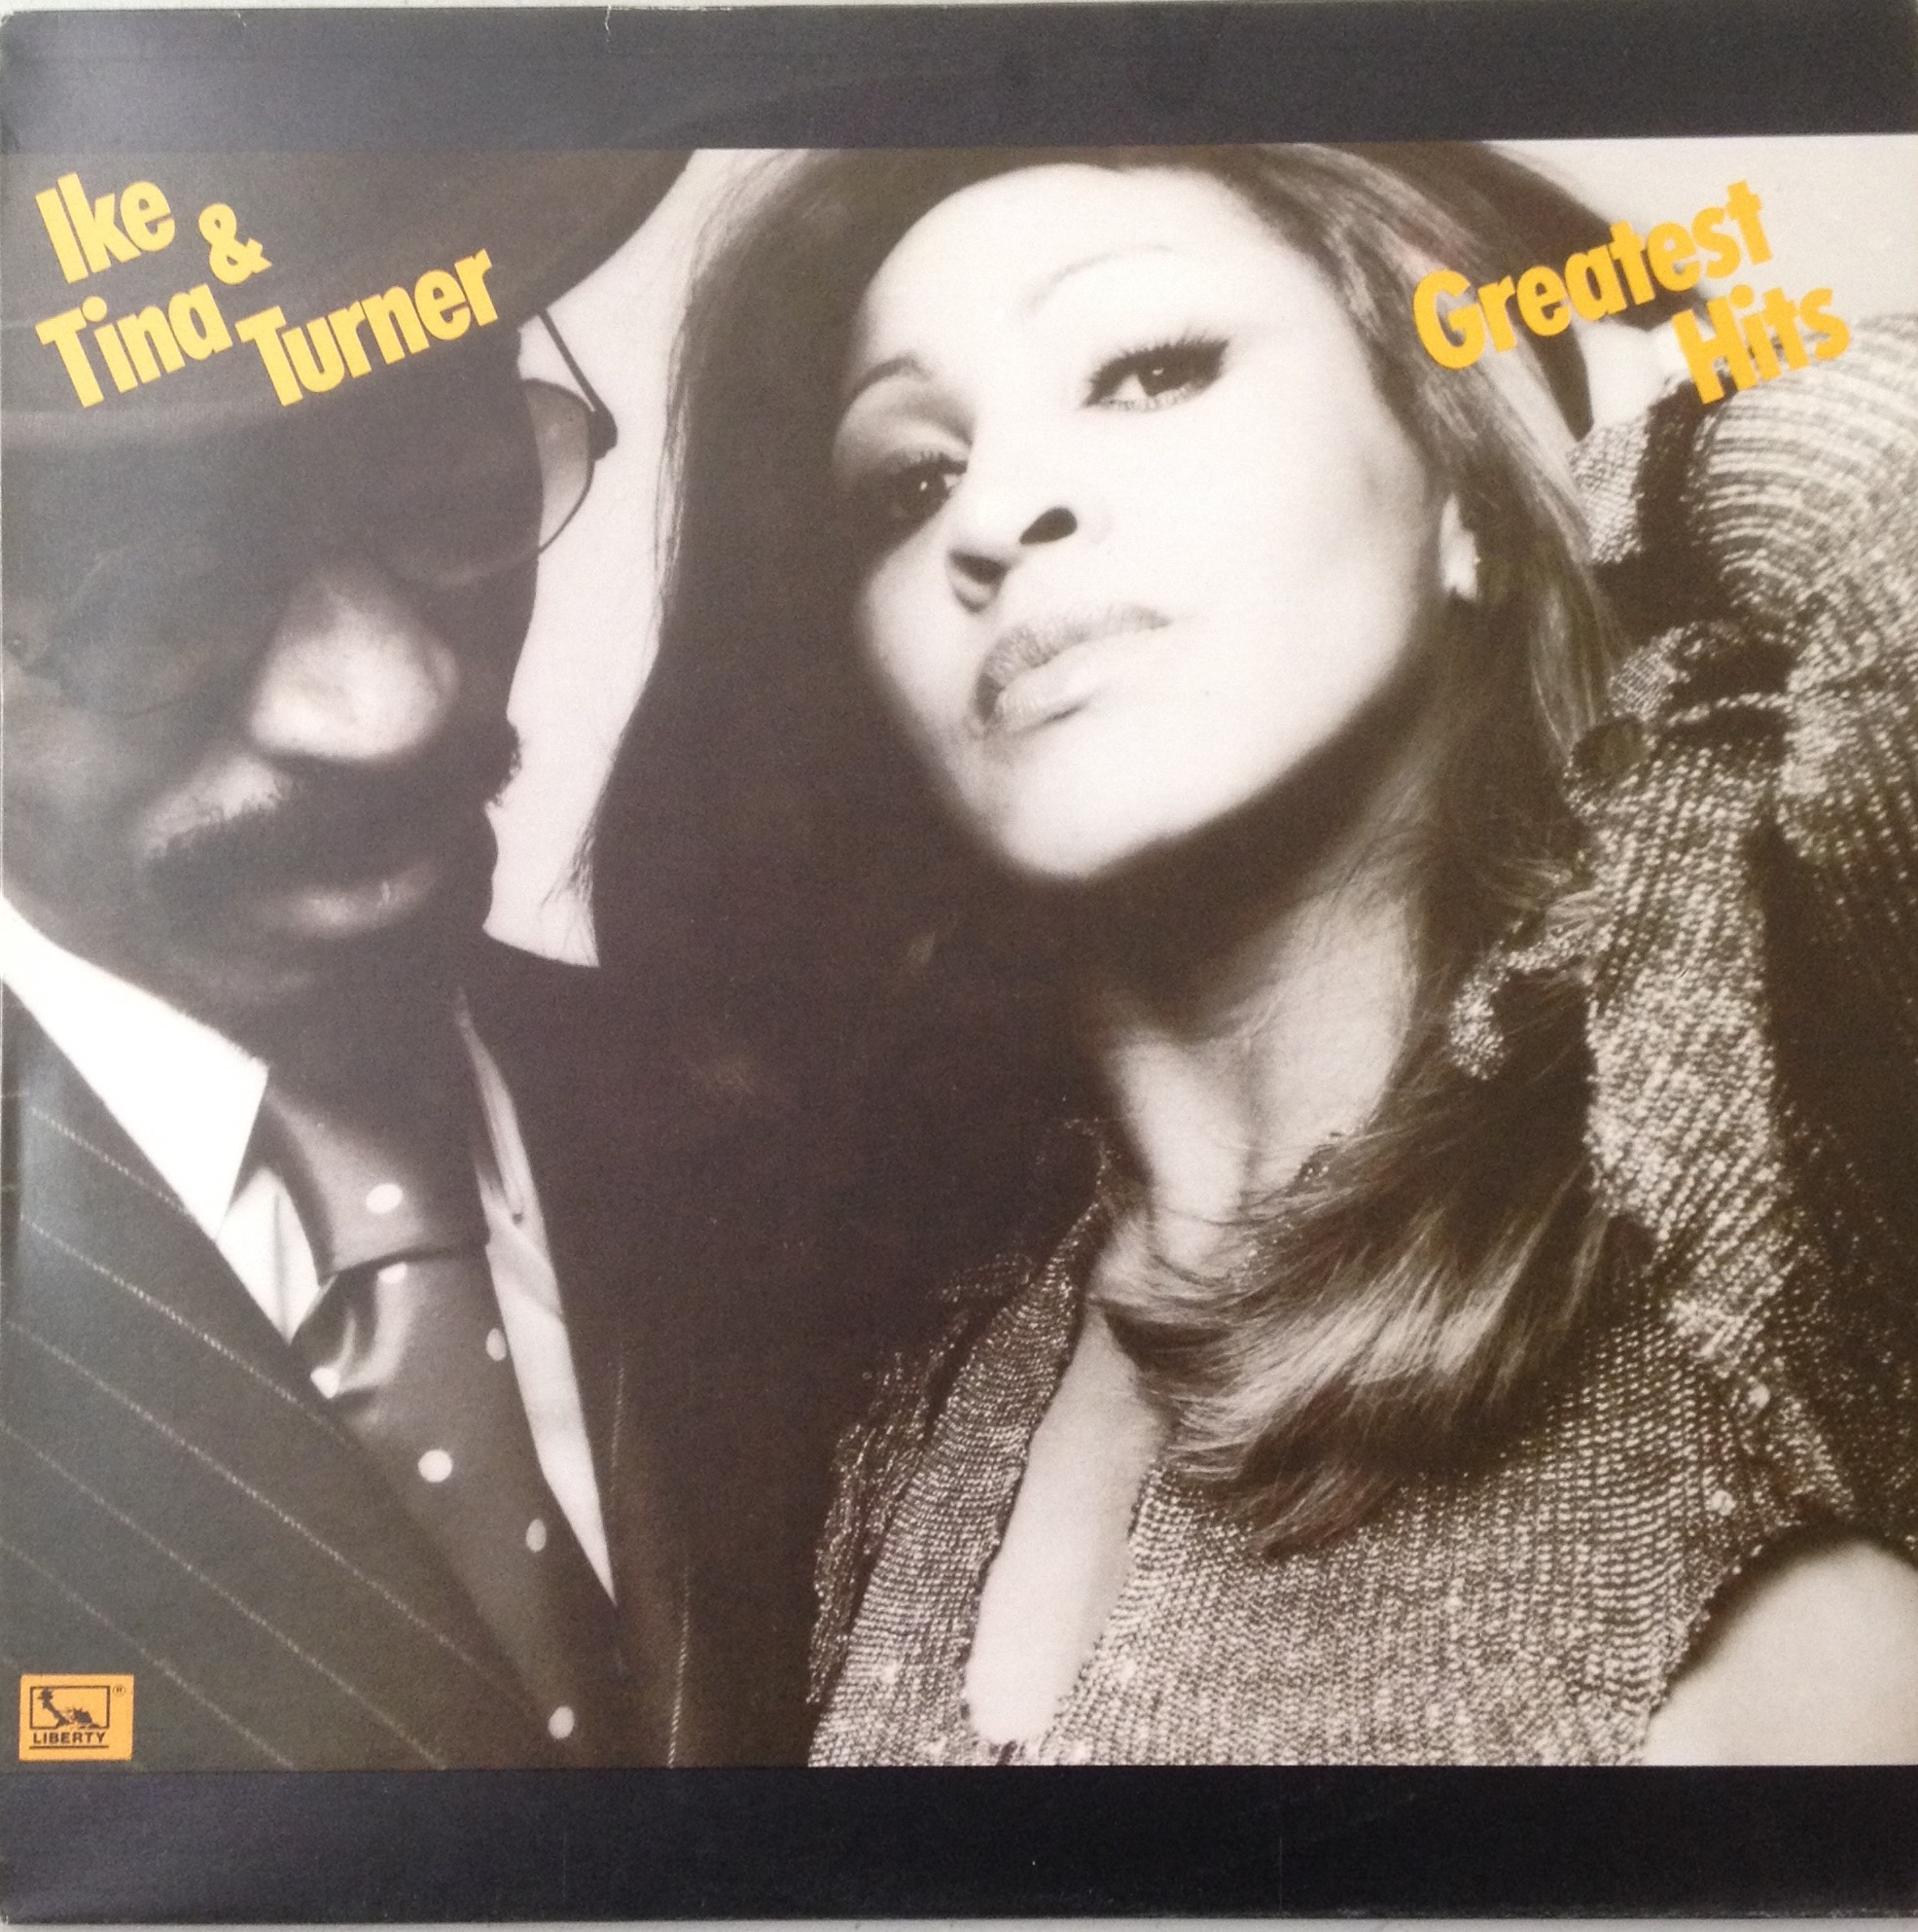 Ike & Tina Turner/GREATEST HITS LP